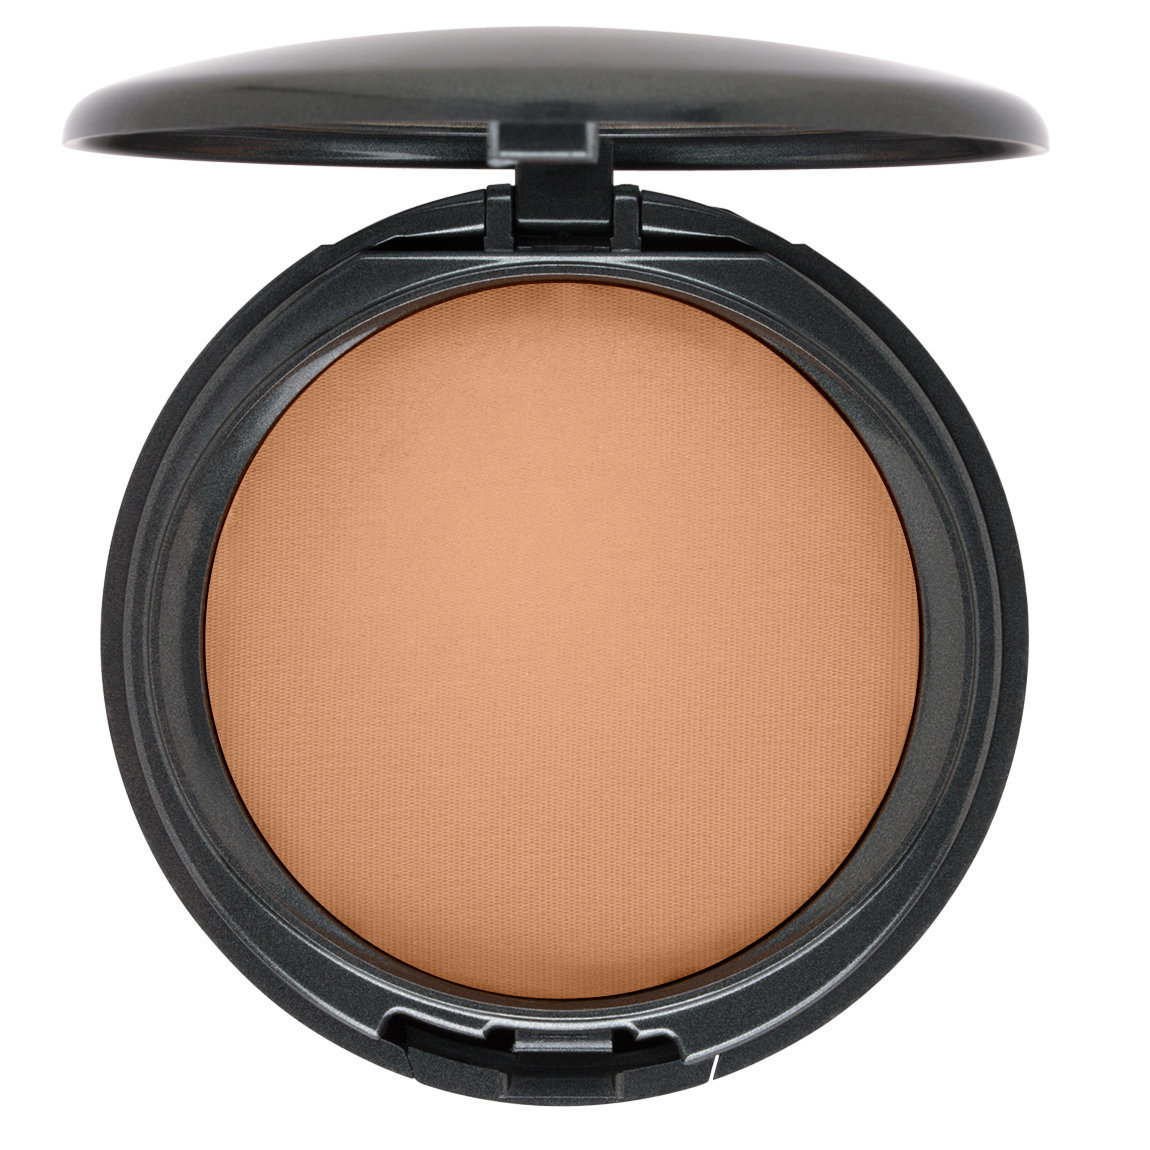 COVER | FX Pressed Mineral Foundation P40 product swatch.